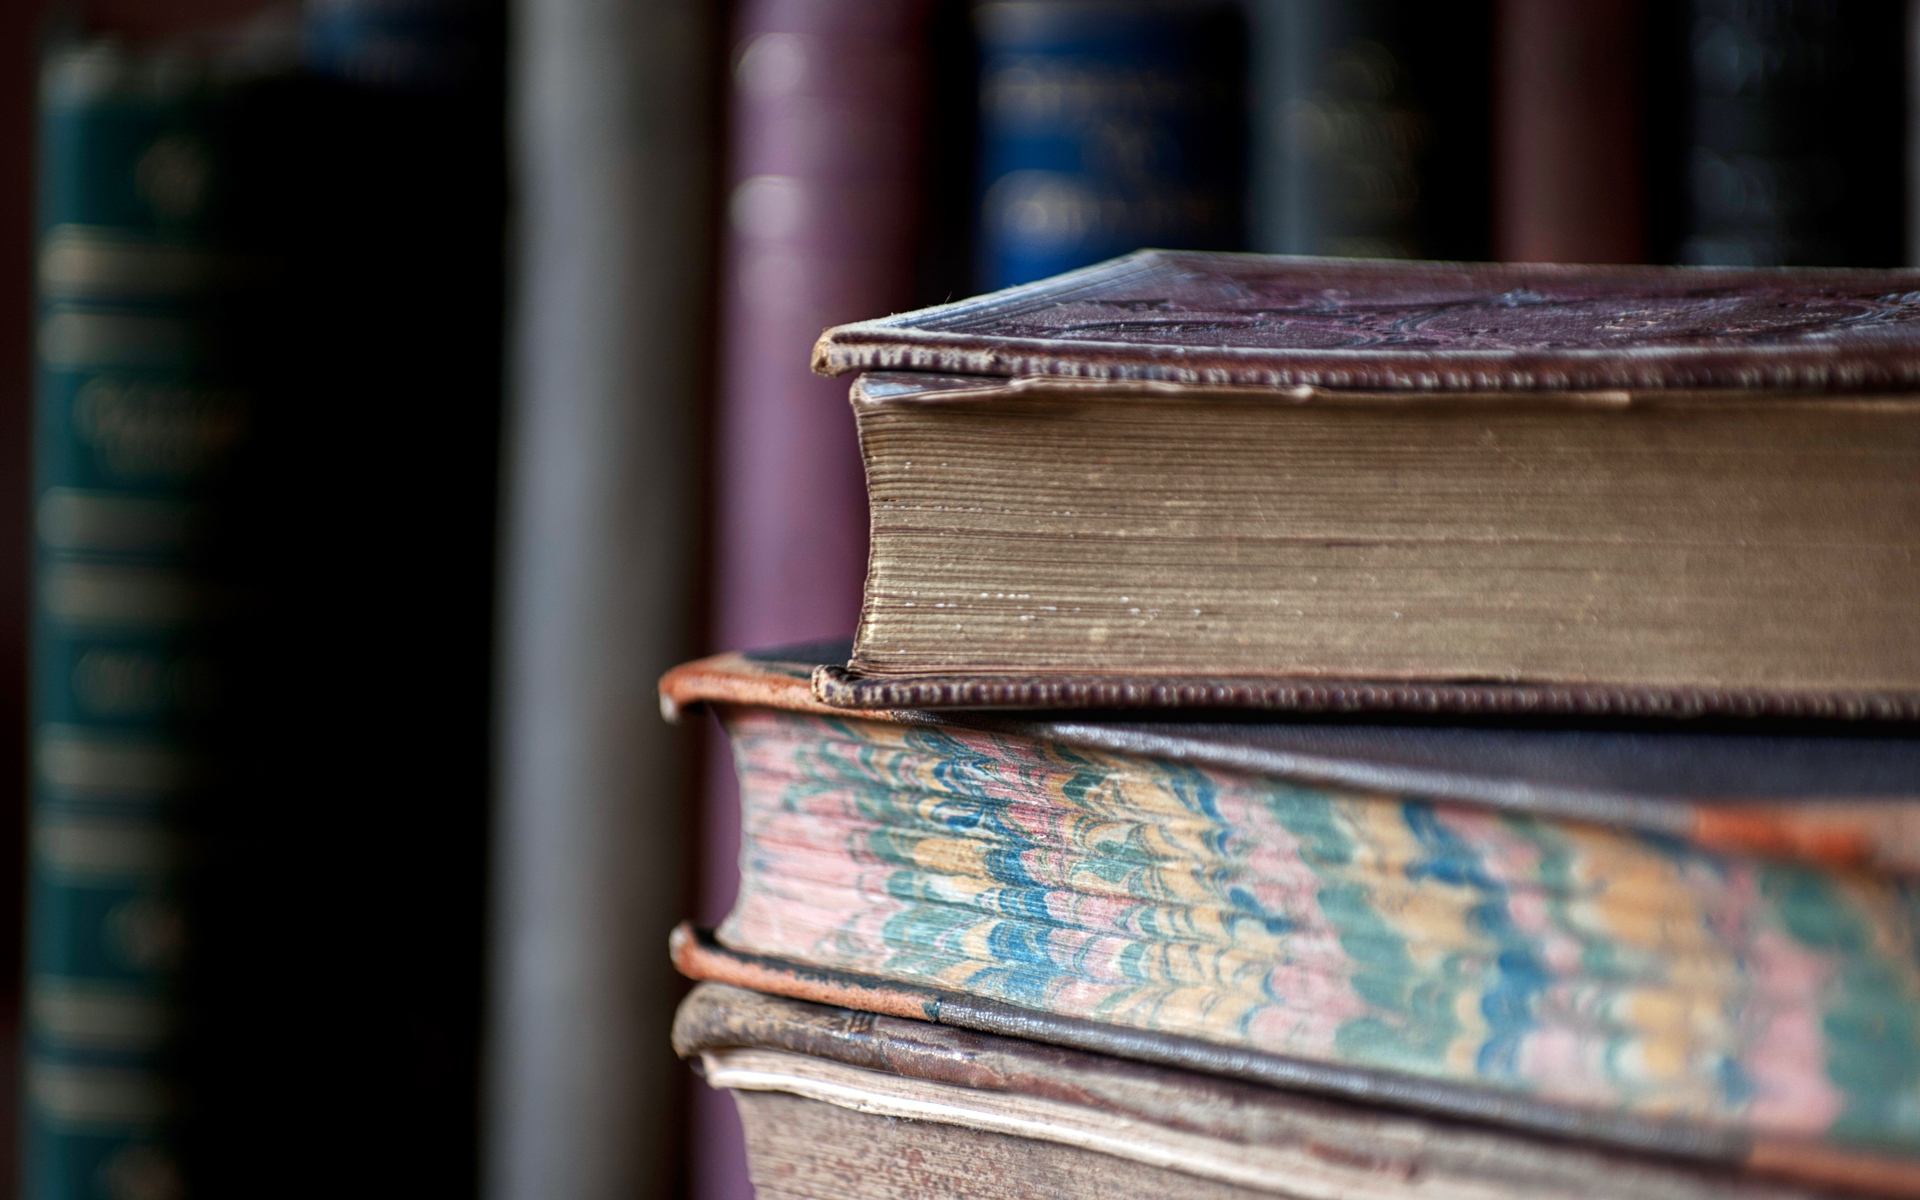 Book HD Wallpaper   Background Image   1920x1200   ID ...